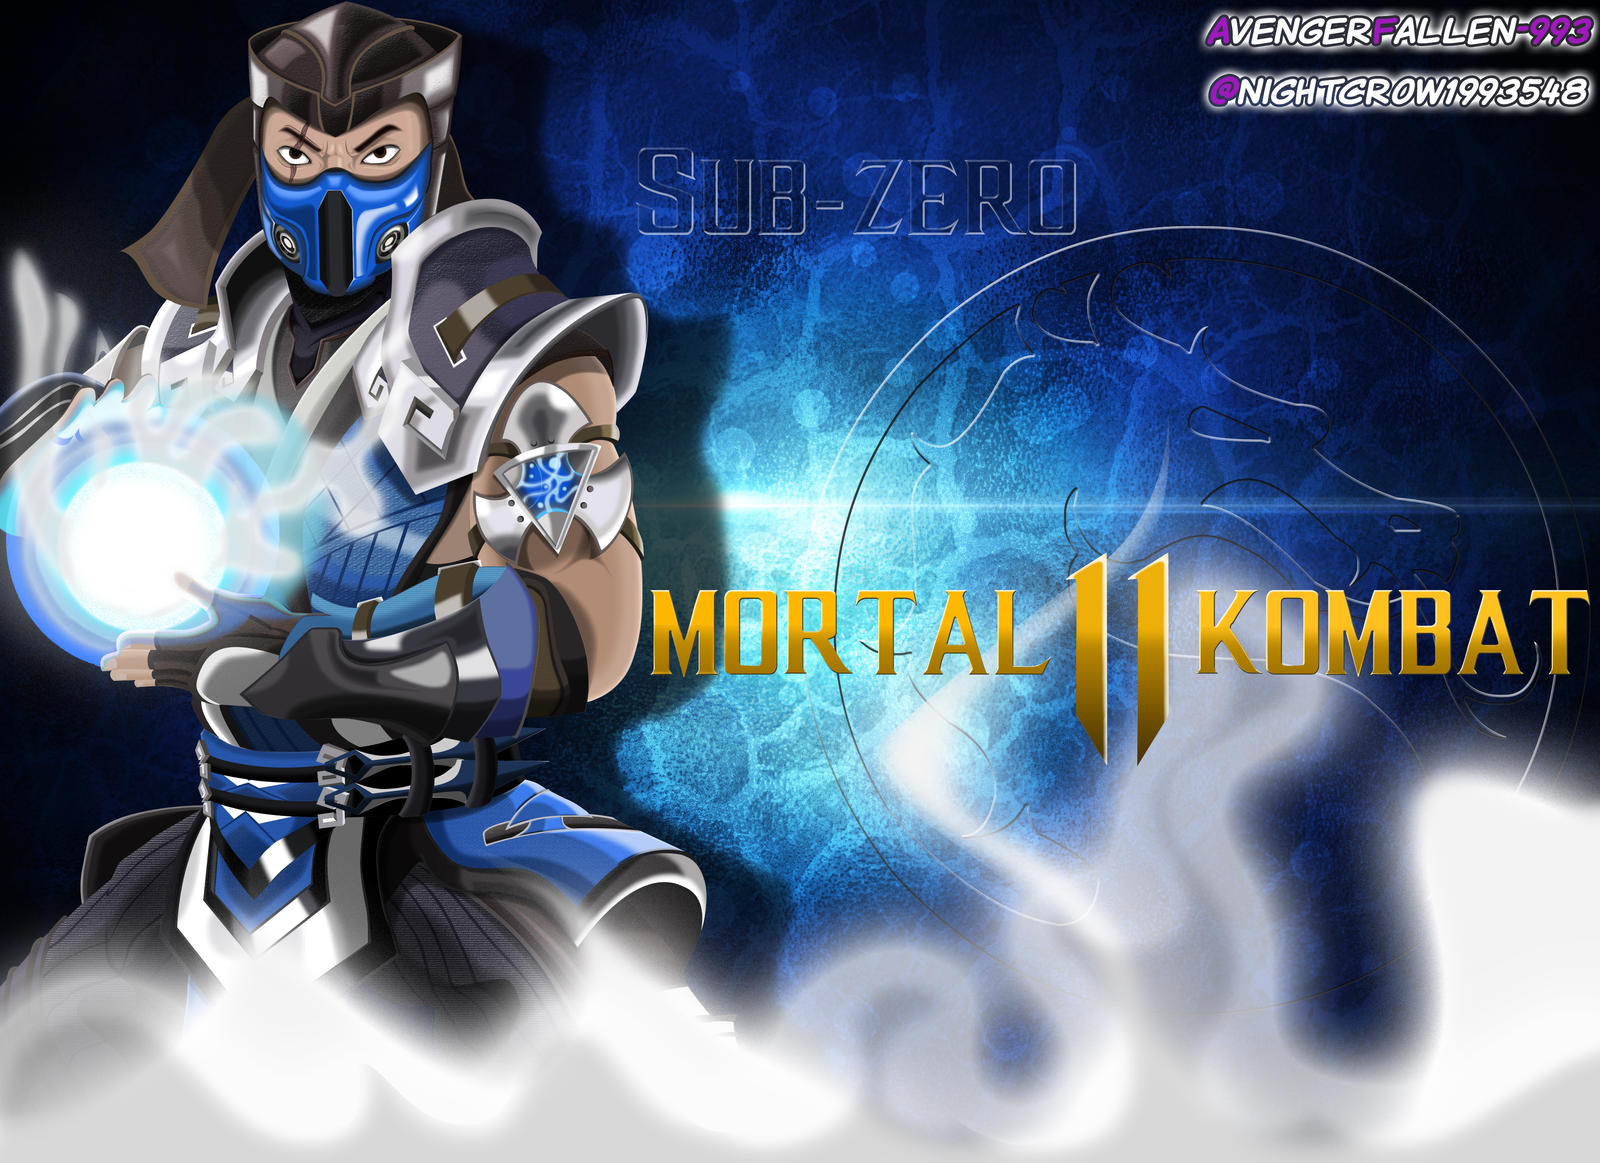 Mk 11 Sub Zero Wallpaper By Avengerfallen 993 On Deviantart